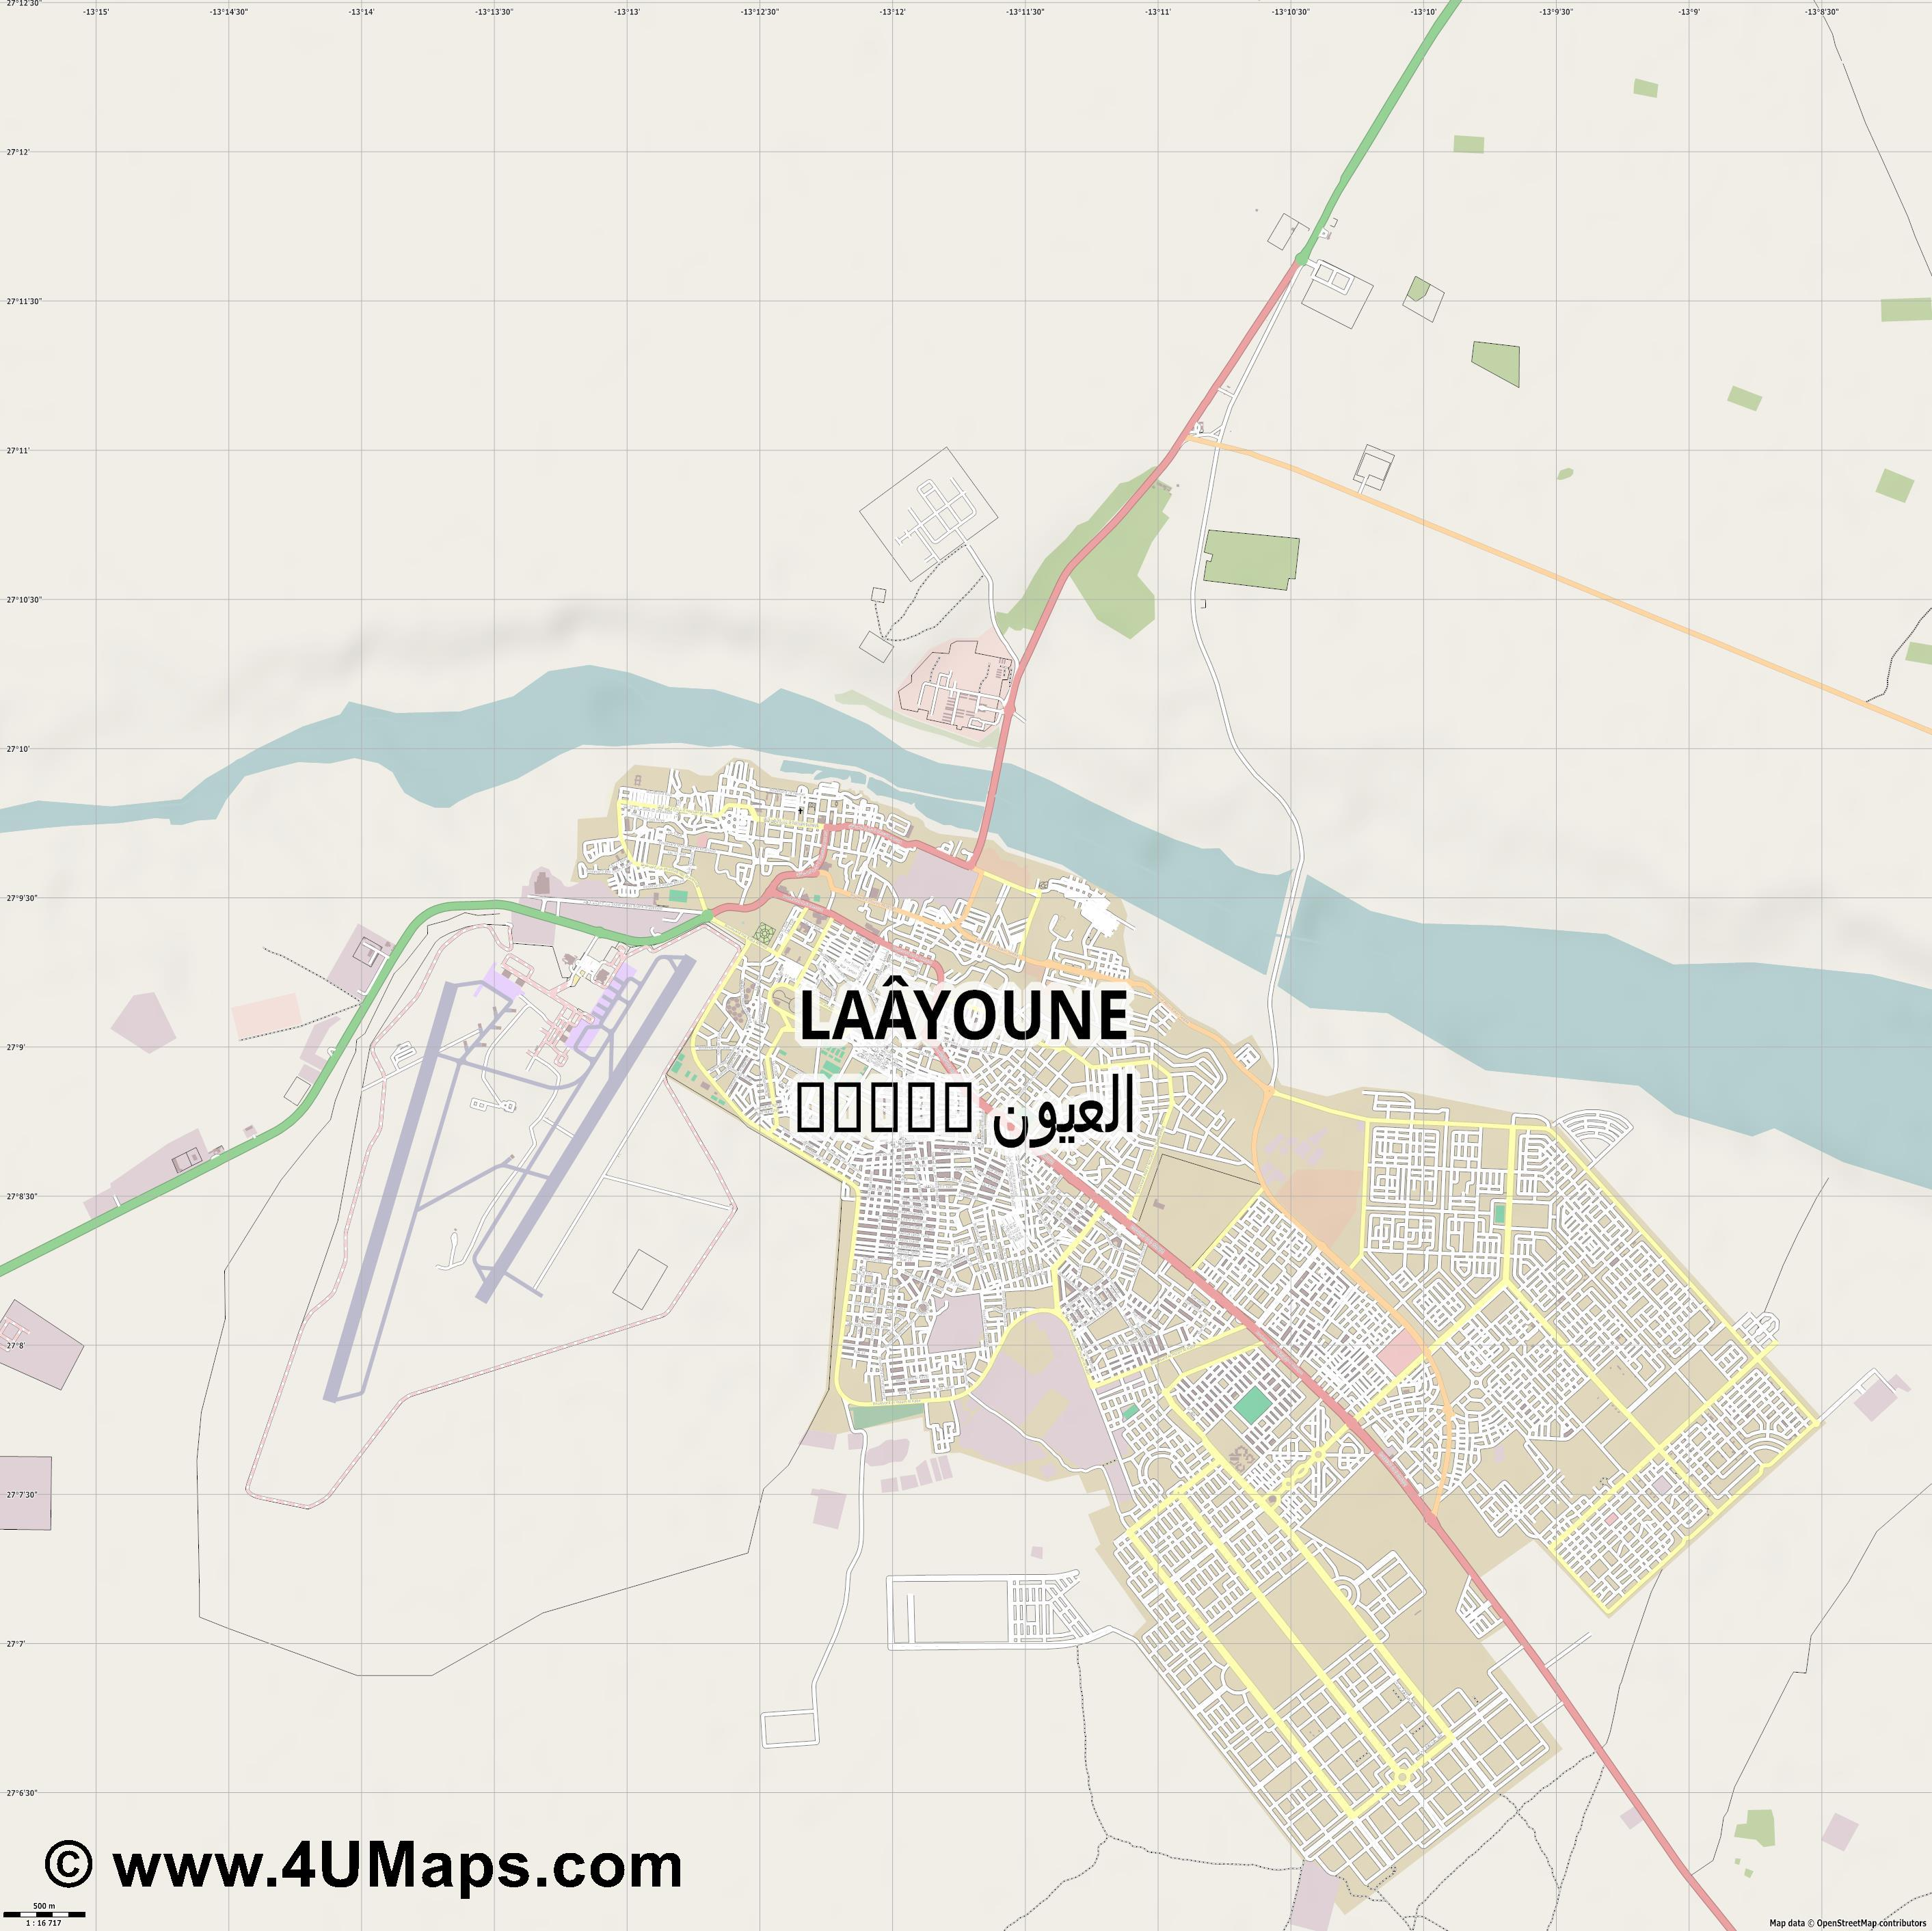 Laâyoune العيون El Aaiún El Ayun Ajun  jpg ultra high detail preview vector city map